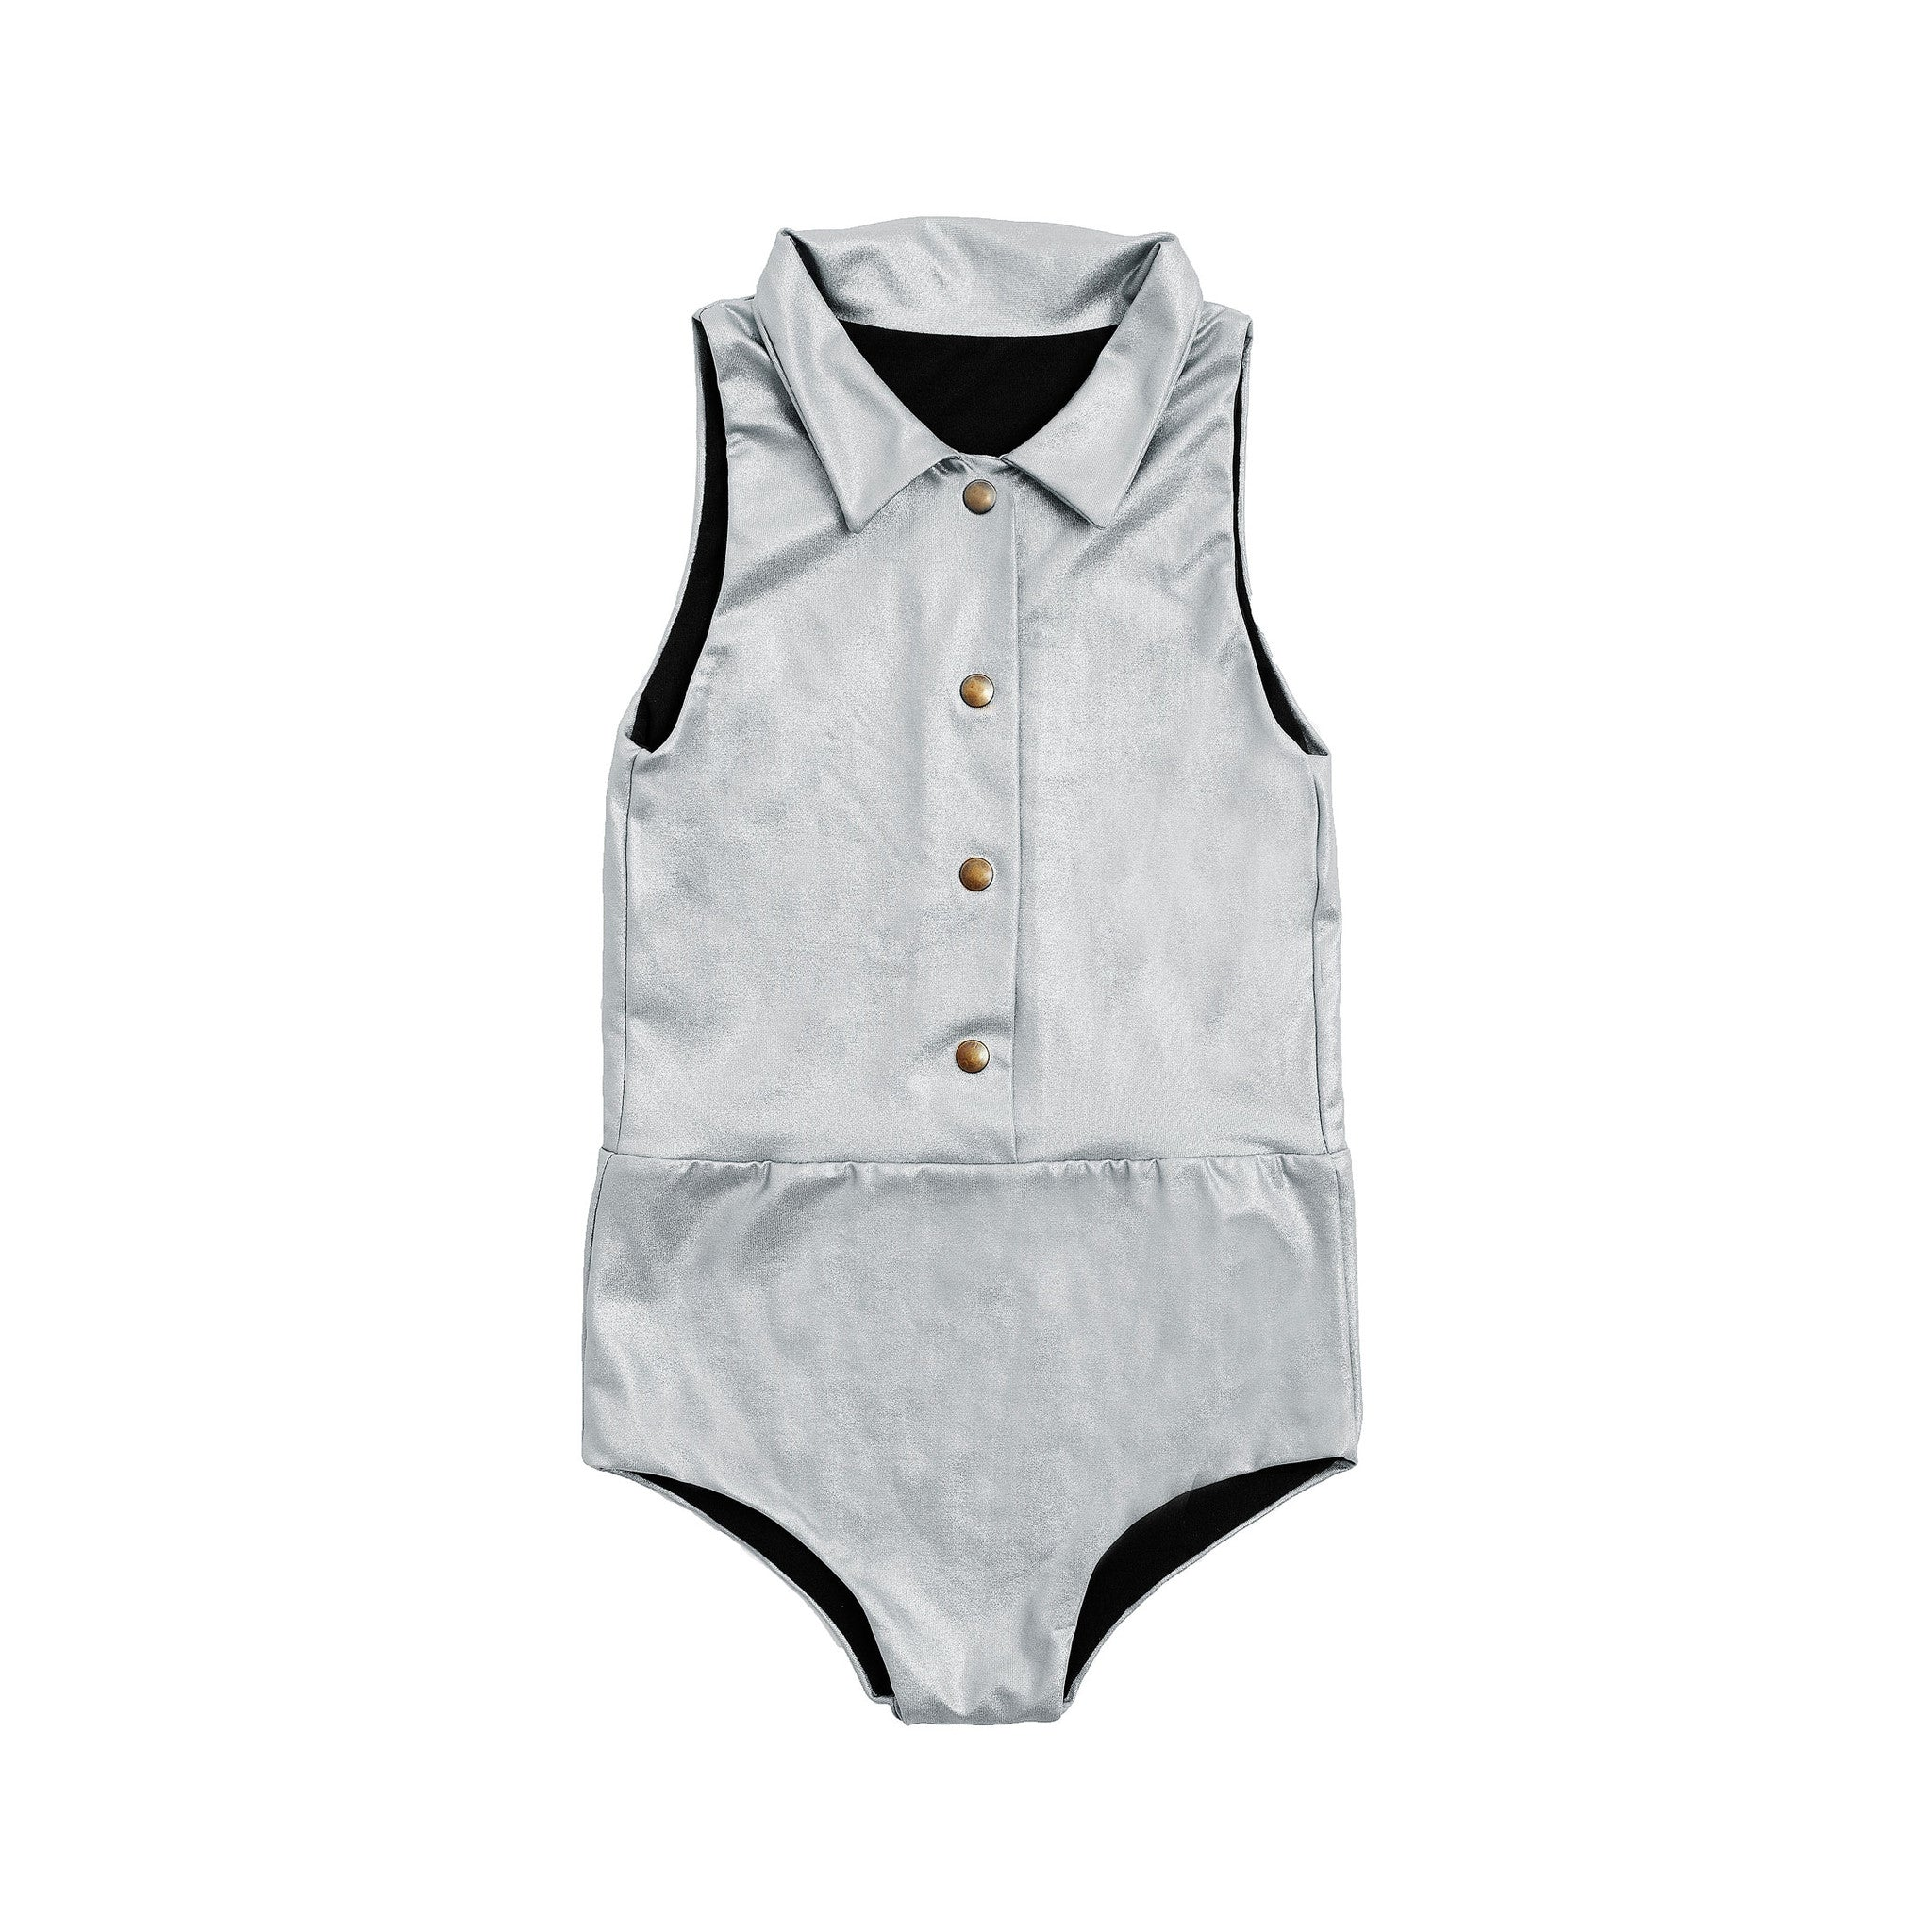 Little Creative Factory Silver Explorer Bathing Suit - Ladida